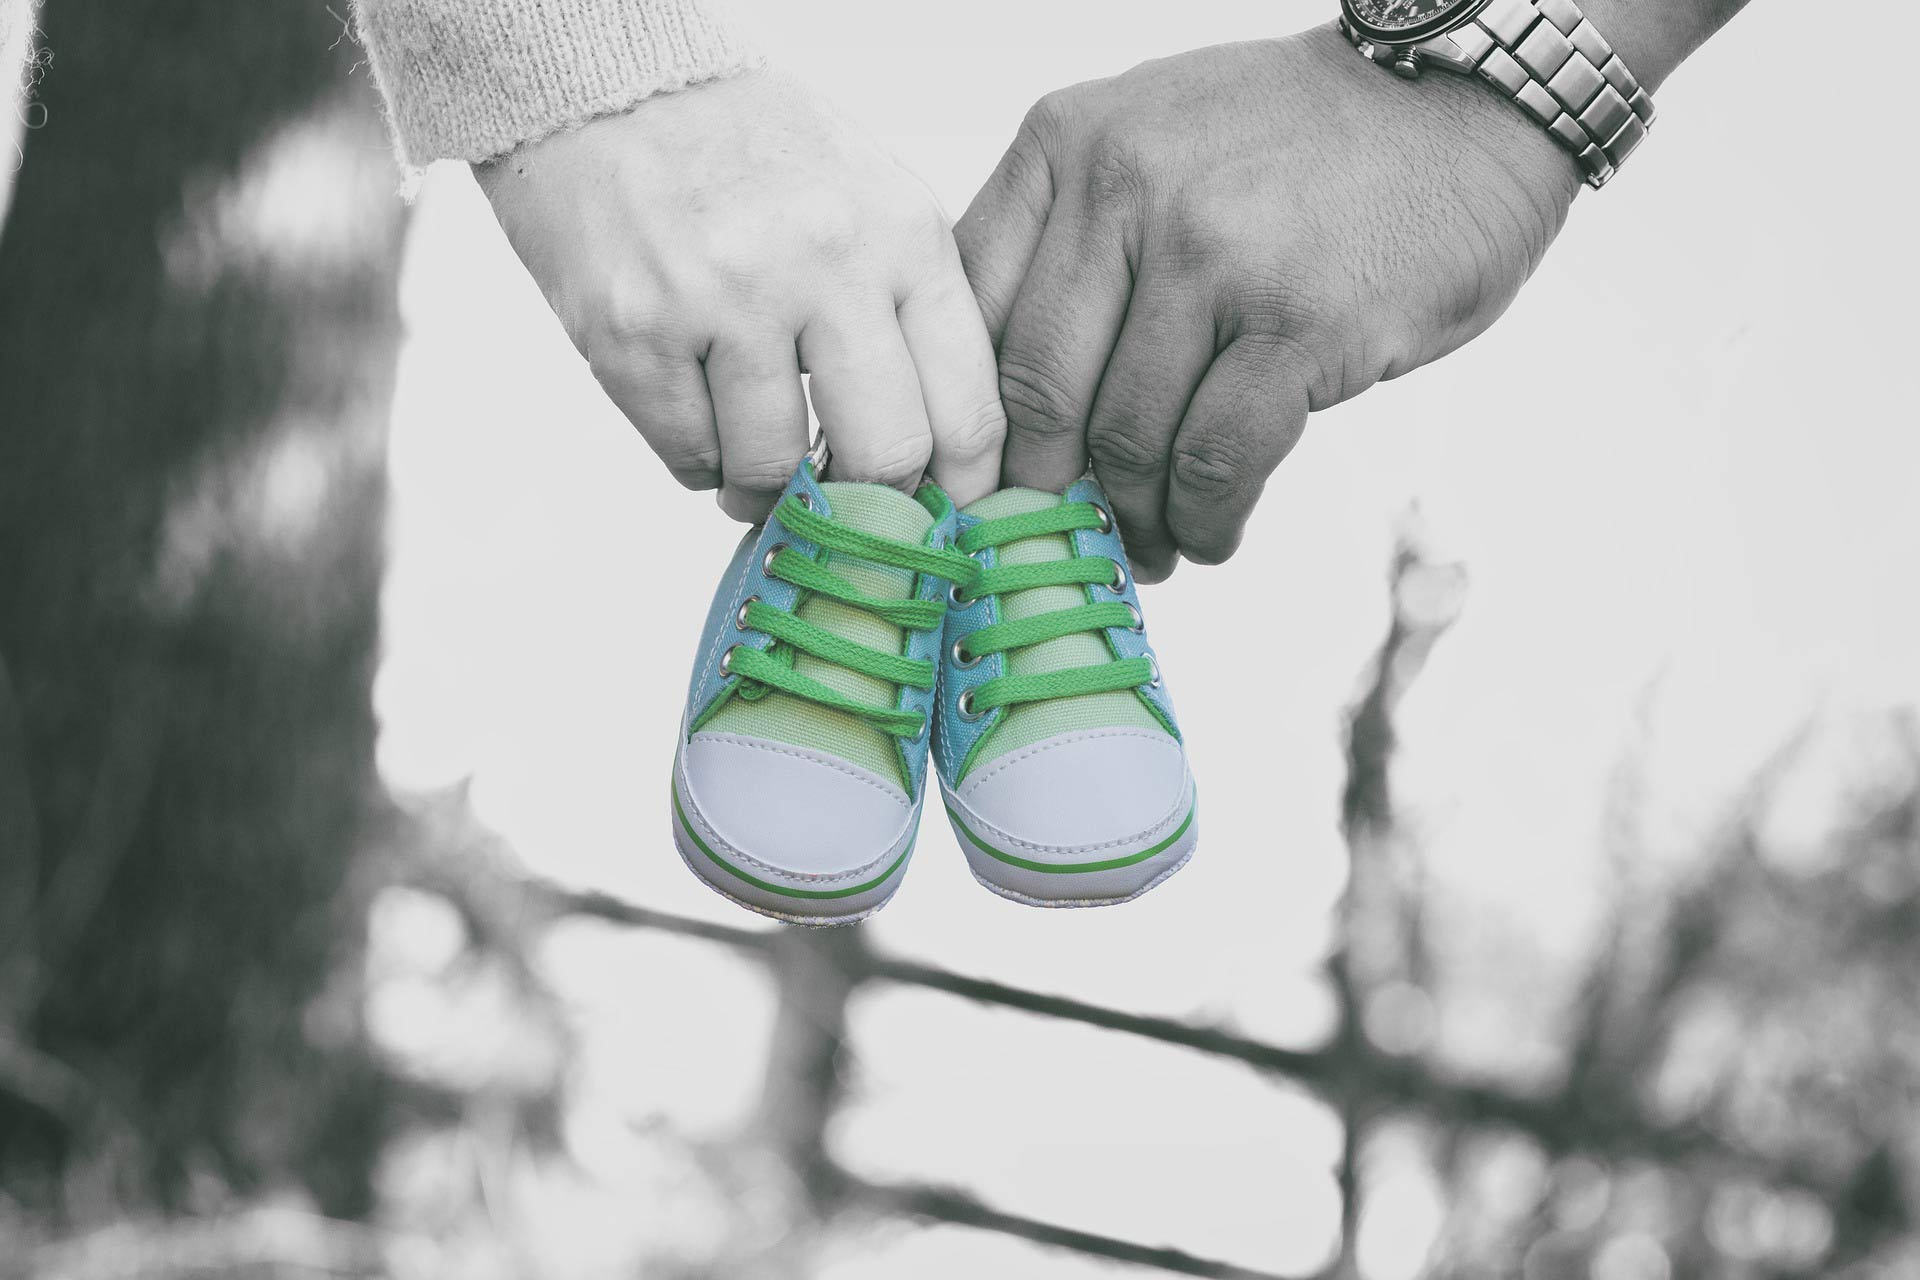 Parents holding baby shoes